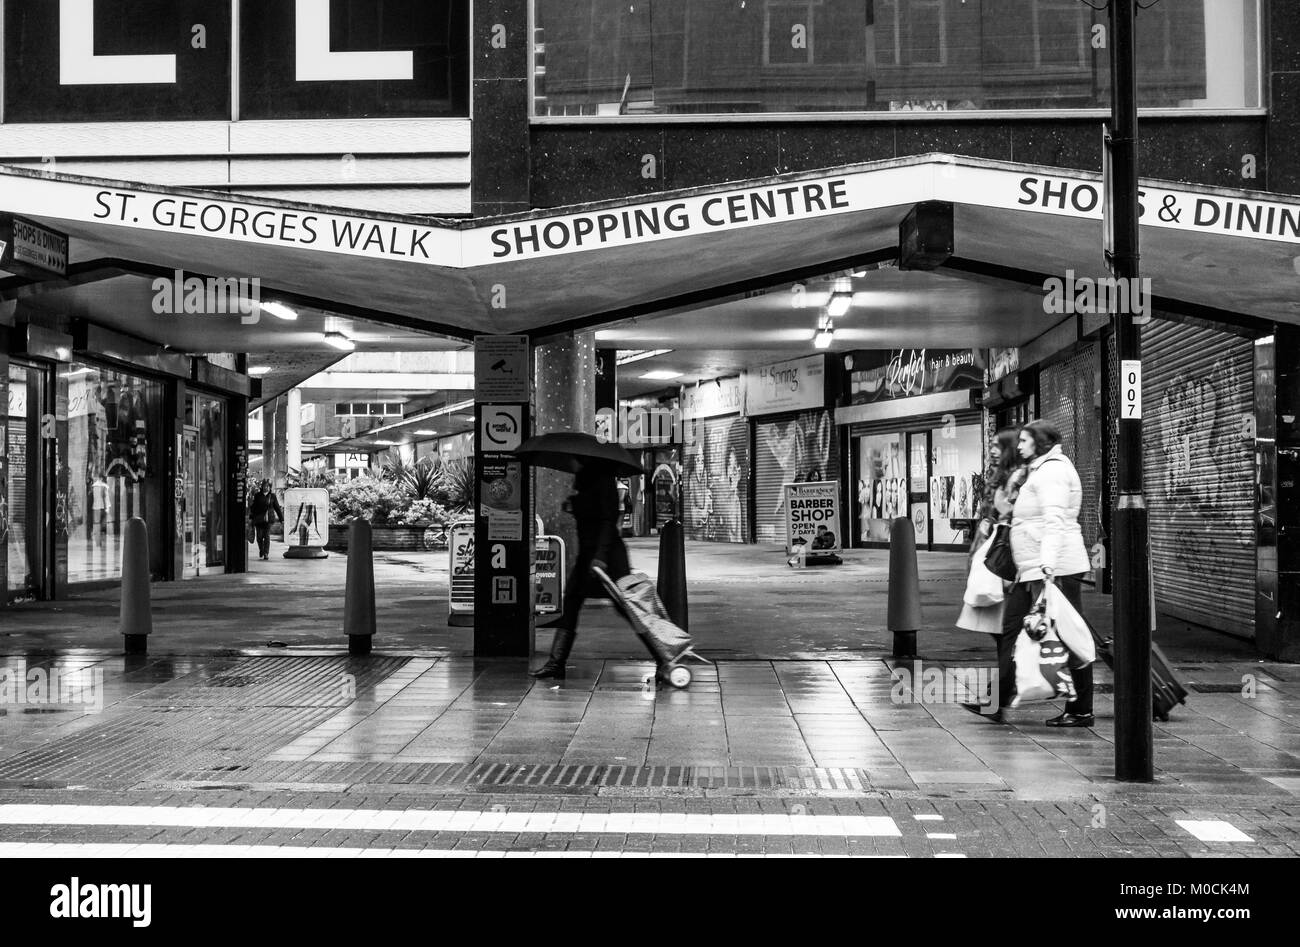 St Georges Walk Shopping Centre in Croydon, South London - Stock Image